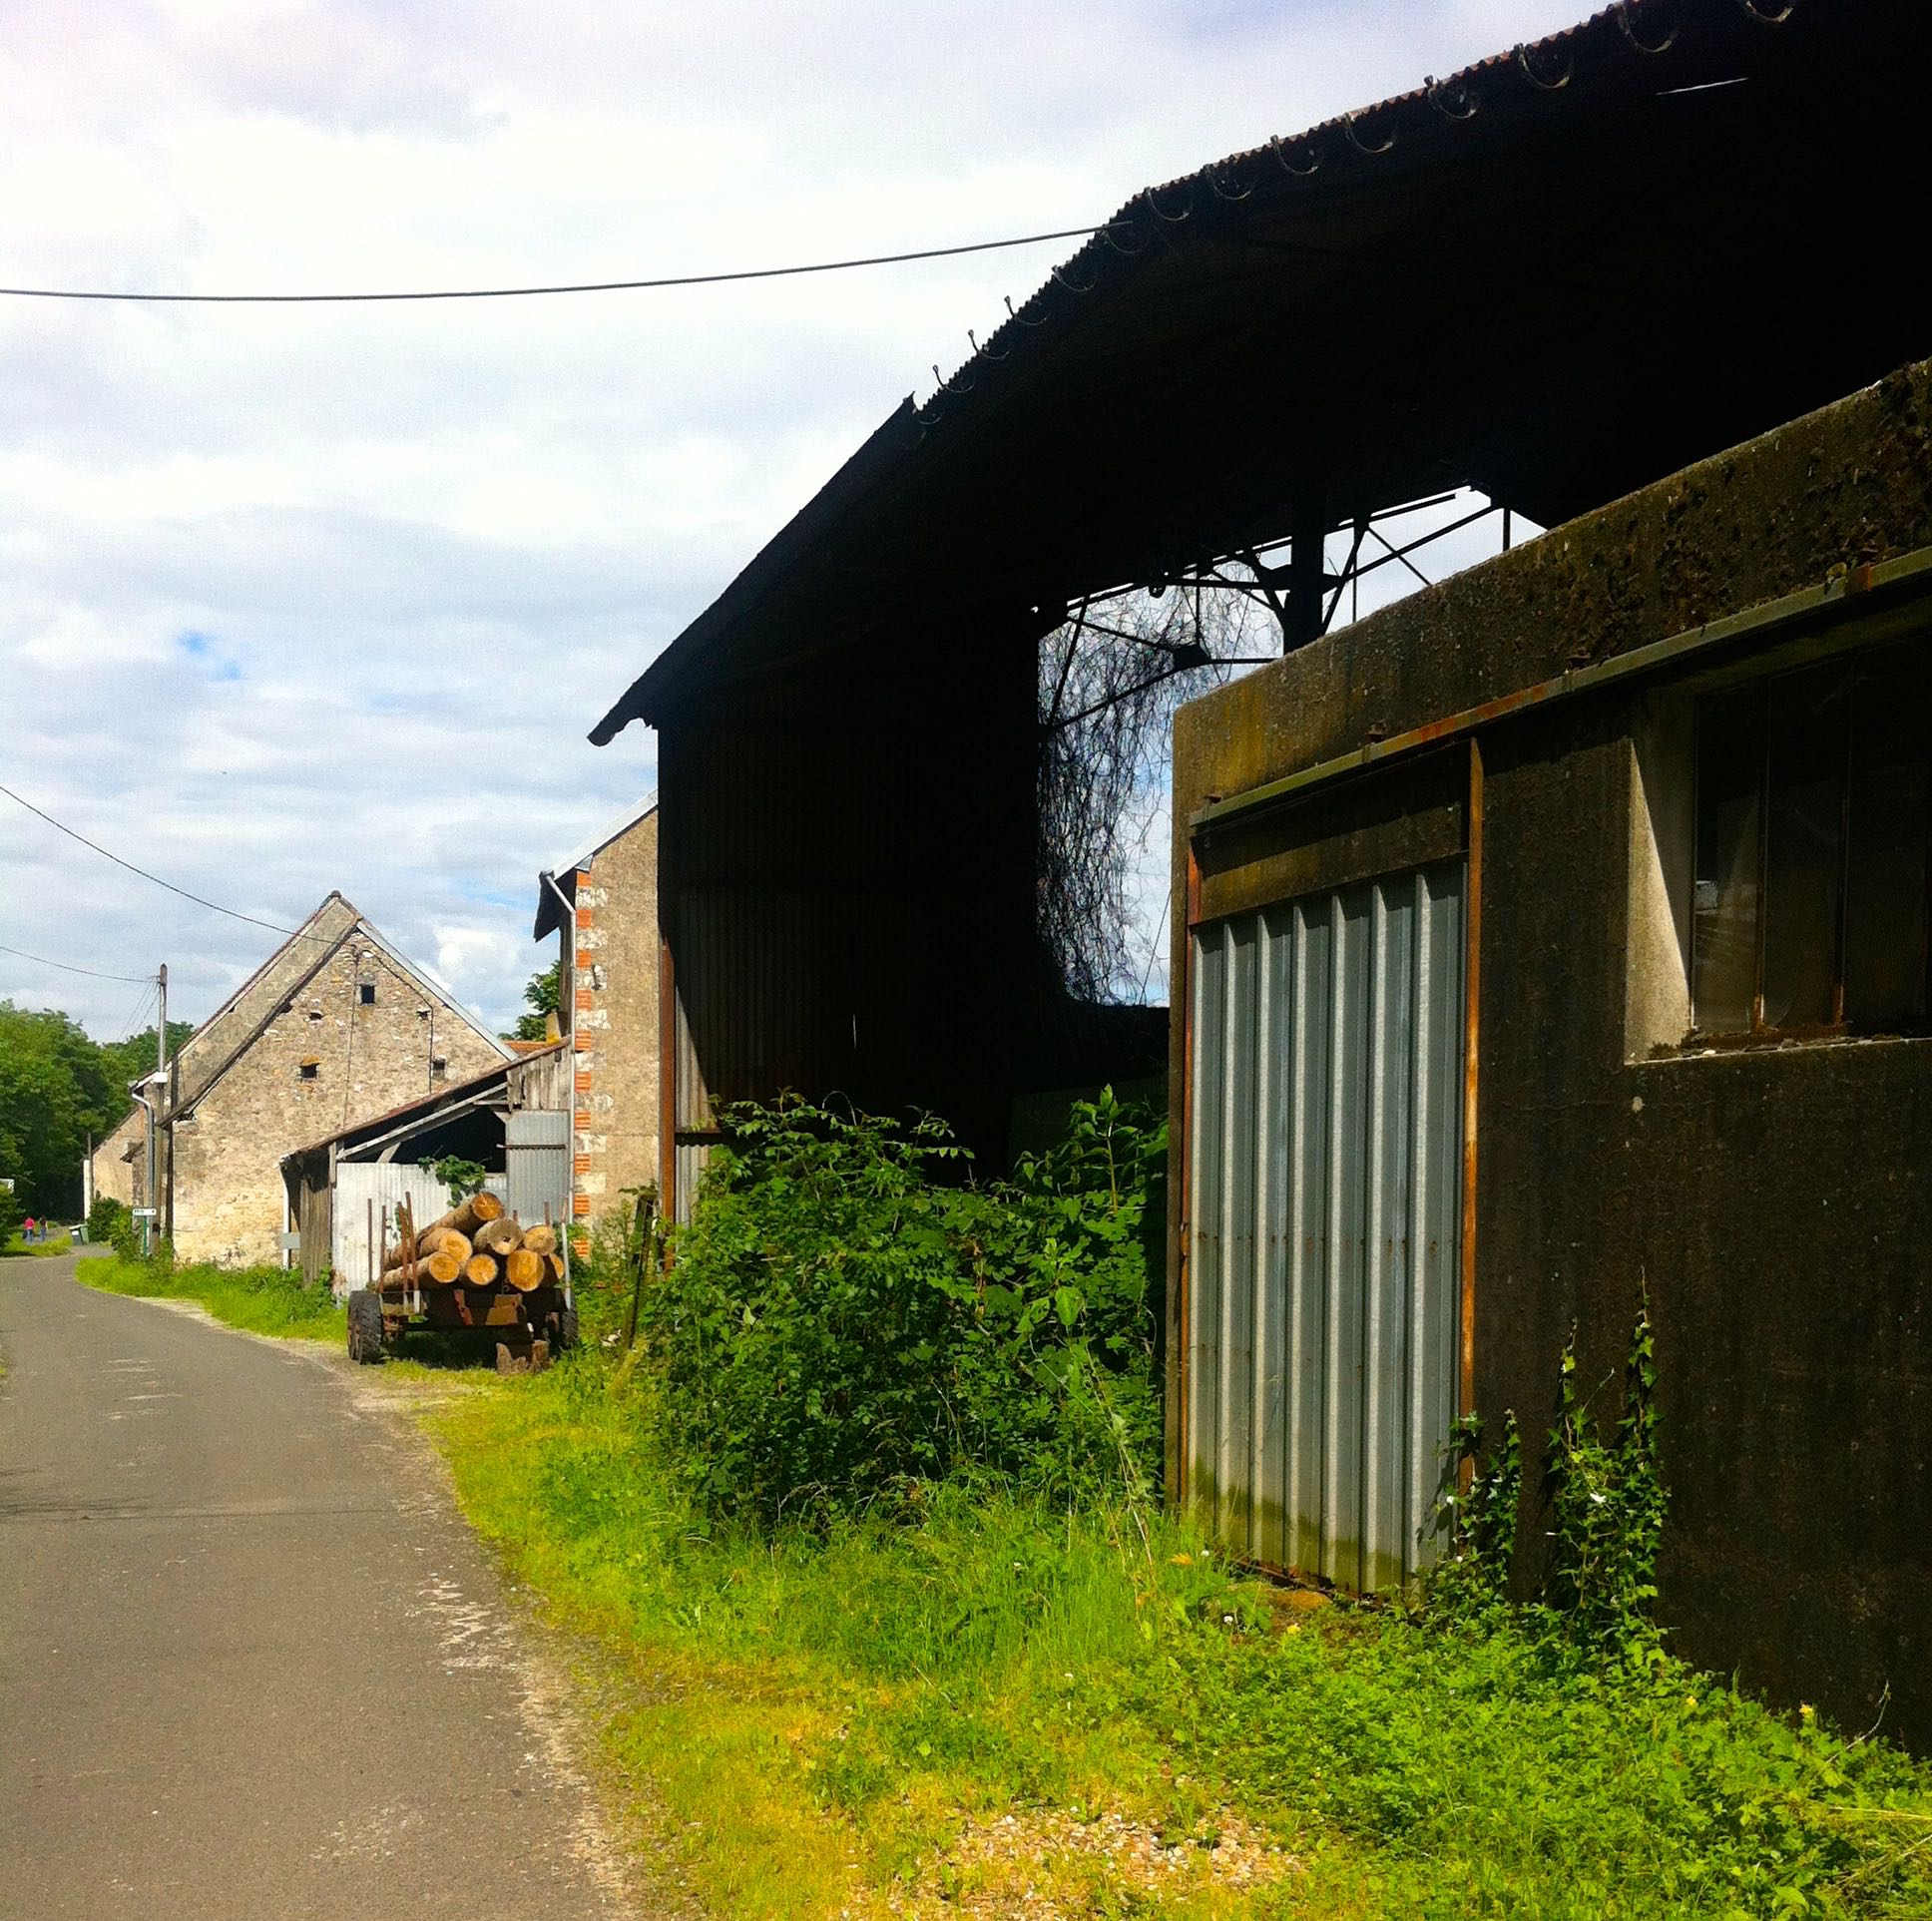 Cycling through a typically French country village in the Loire